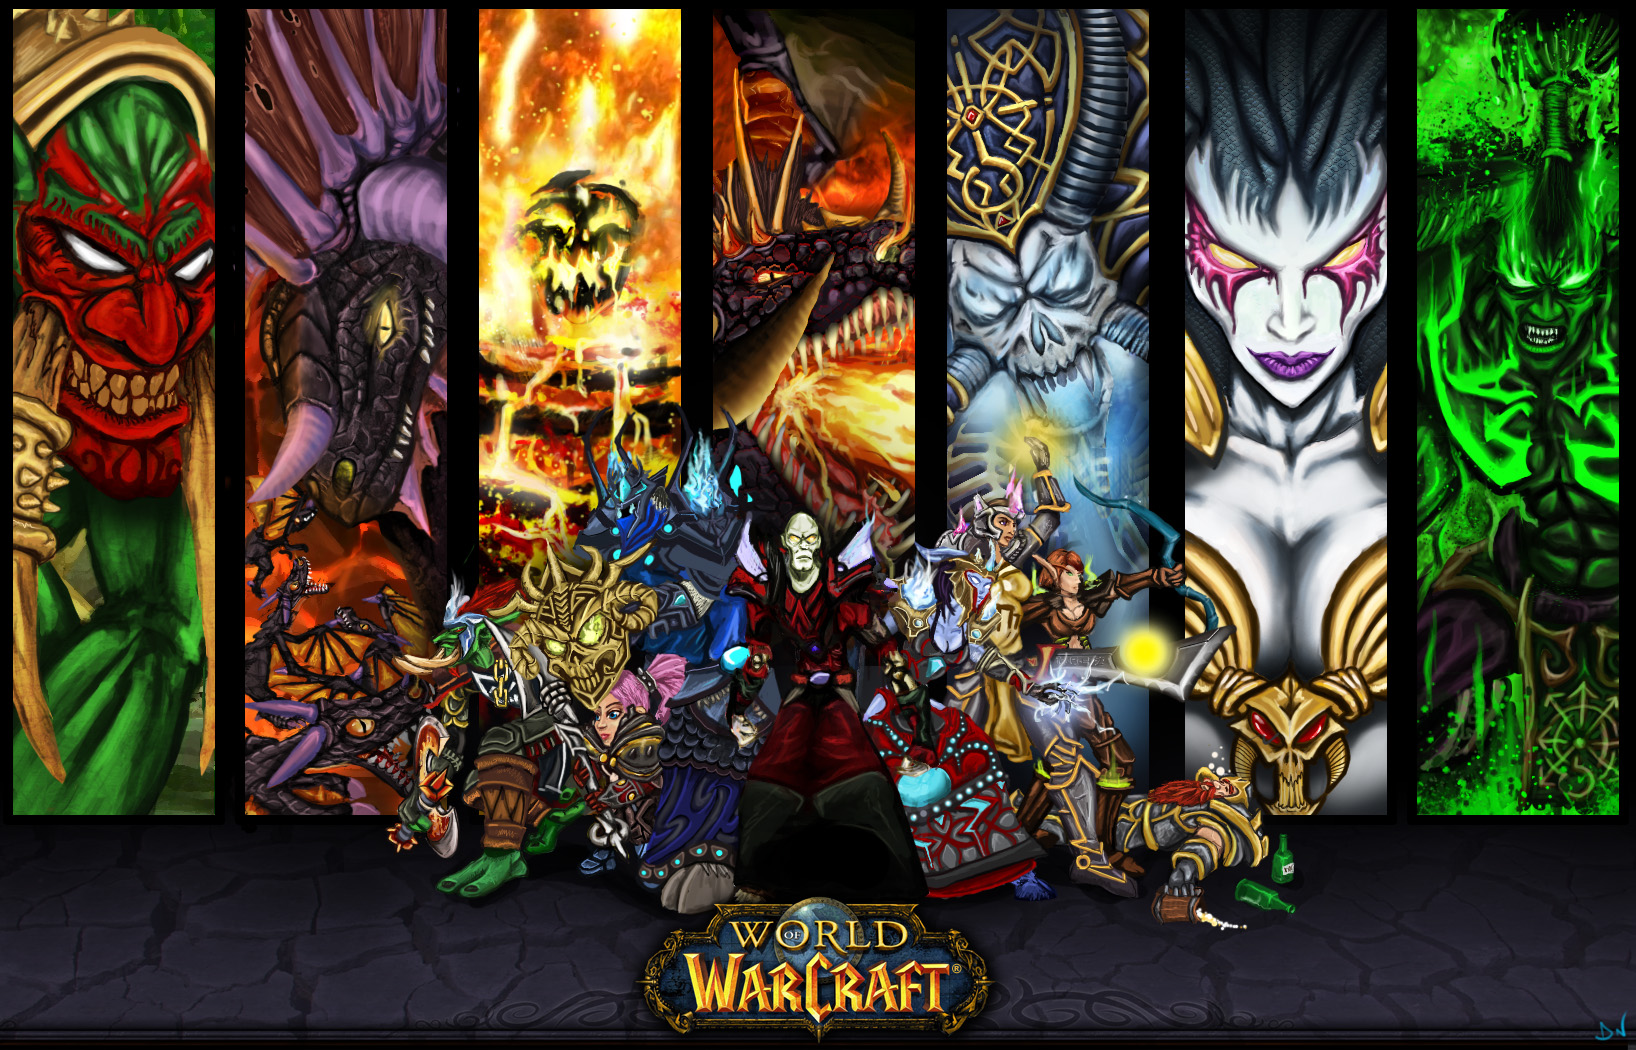 49 World Of Warcraft Movie Wallpaper On Wallpapersafari